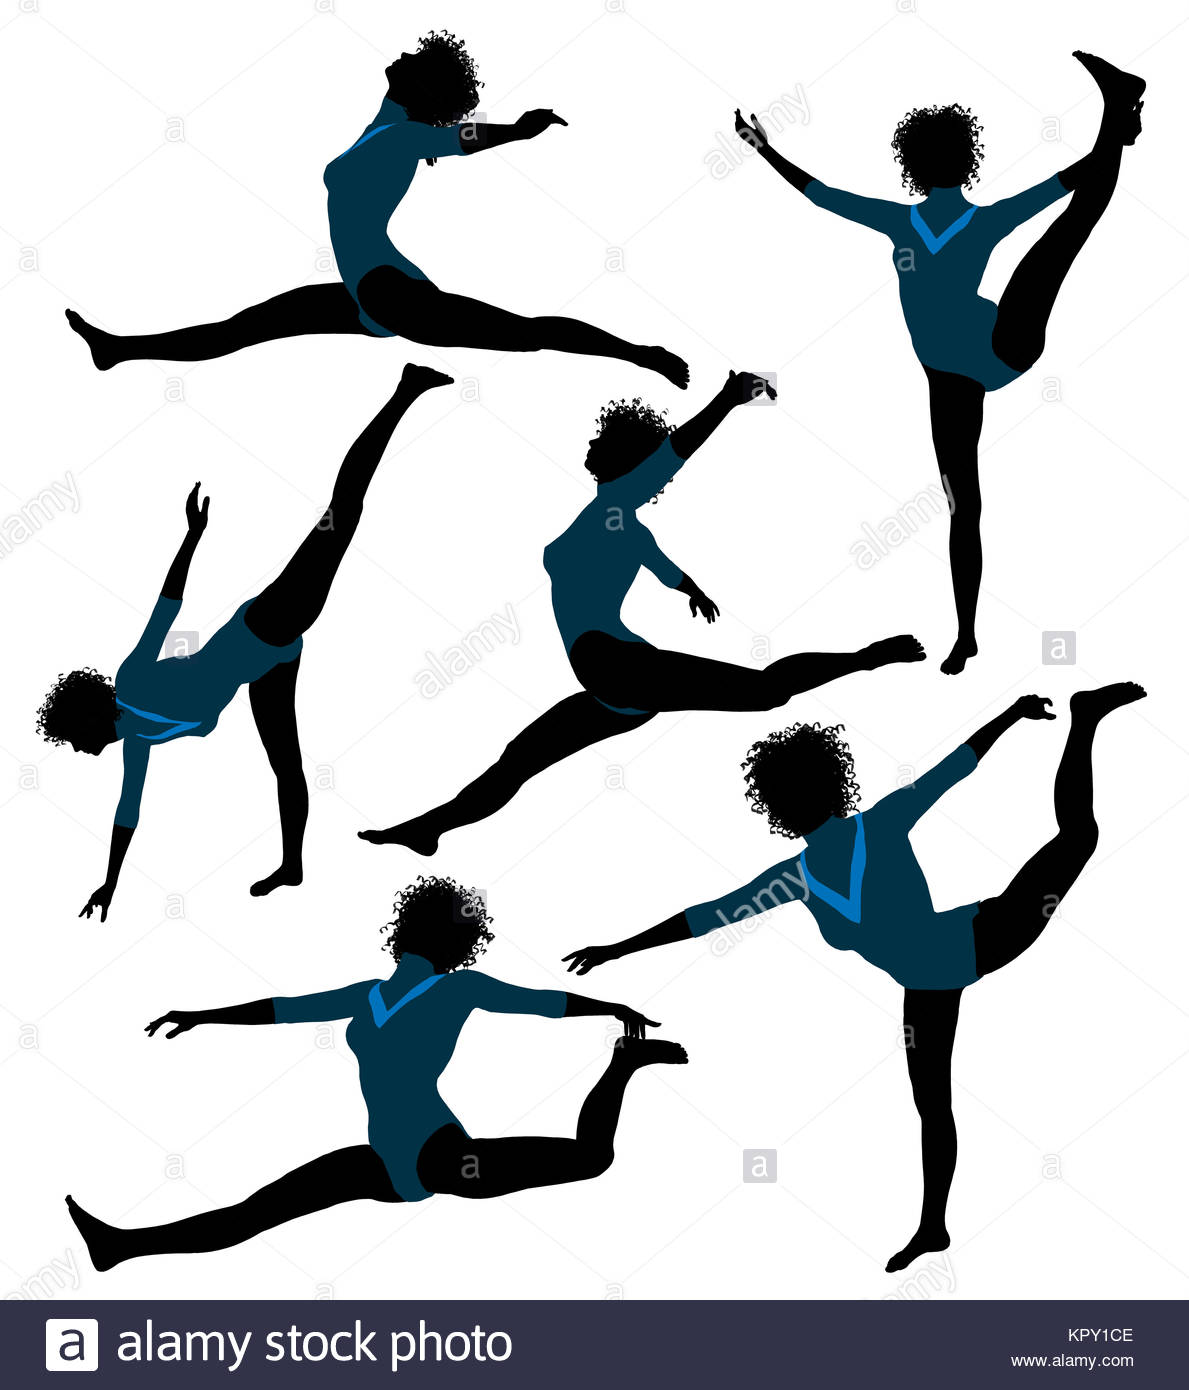 1189x1390 Femalefricanmerican Gymnastrt Illustration Silhouette On